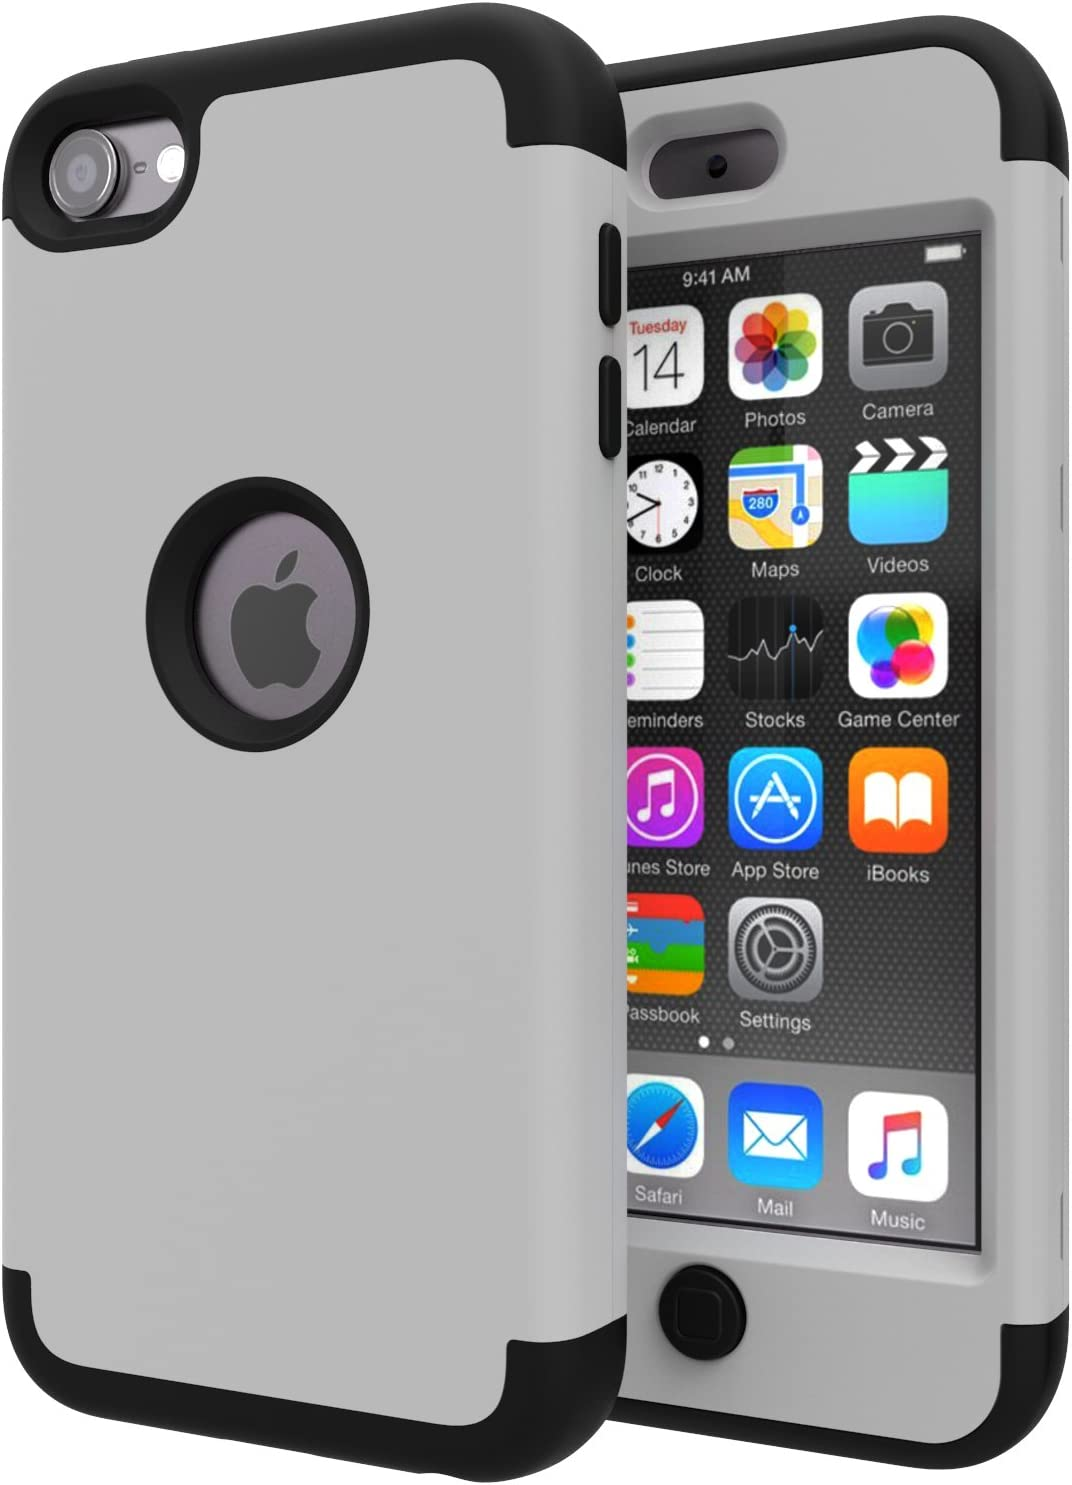 iPod Touch 7 Case,iPod Touch 6 Case,SLMY(TM)Heavy Duty High Impact Armor Case Cover Protective Case for Apple iPod touch 5/6/7th Generation Gray/Black